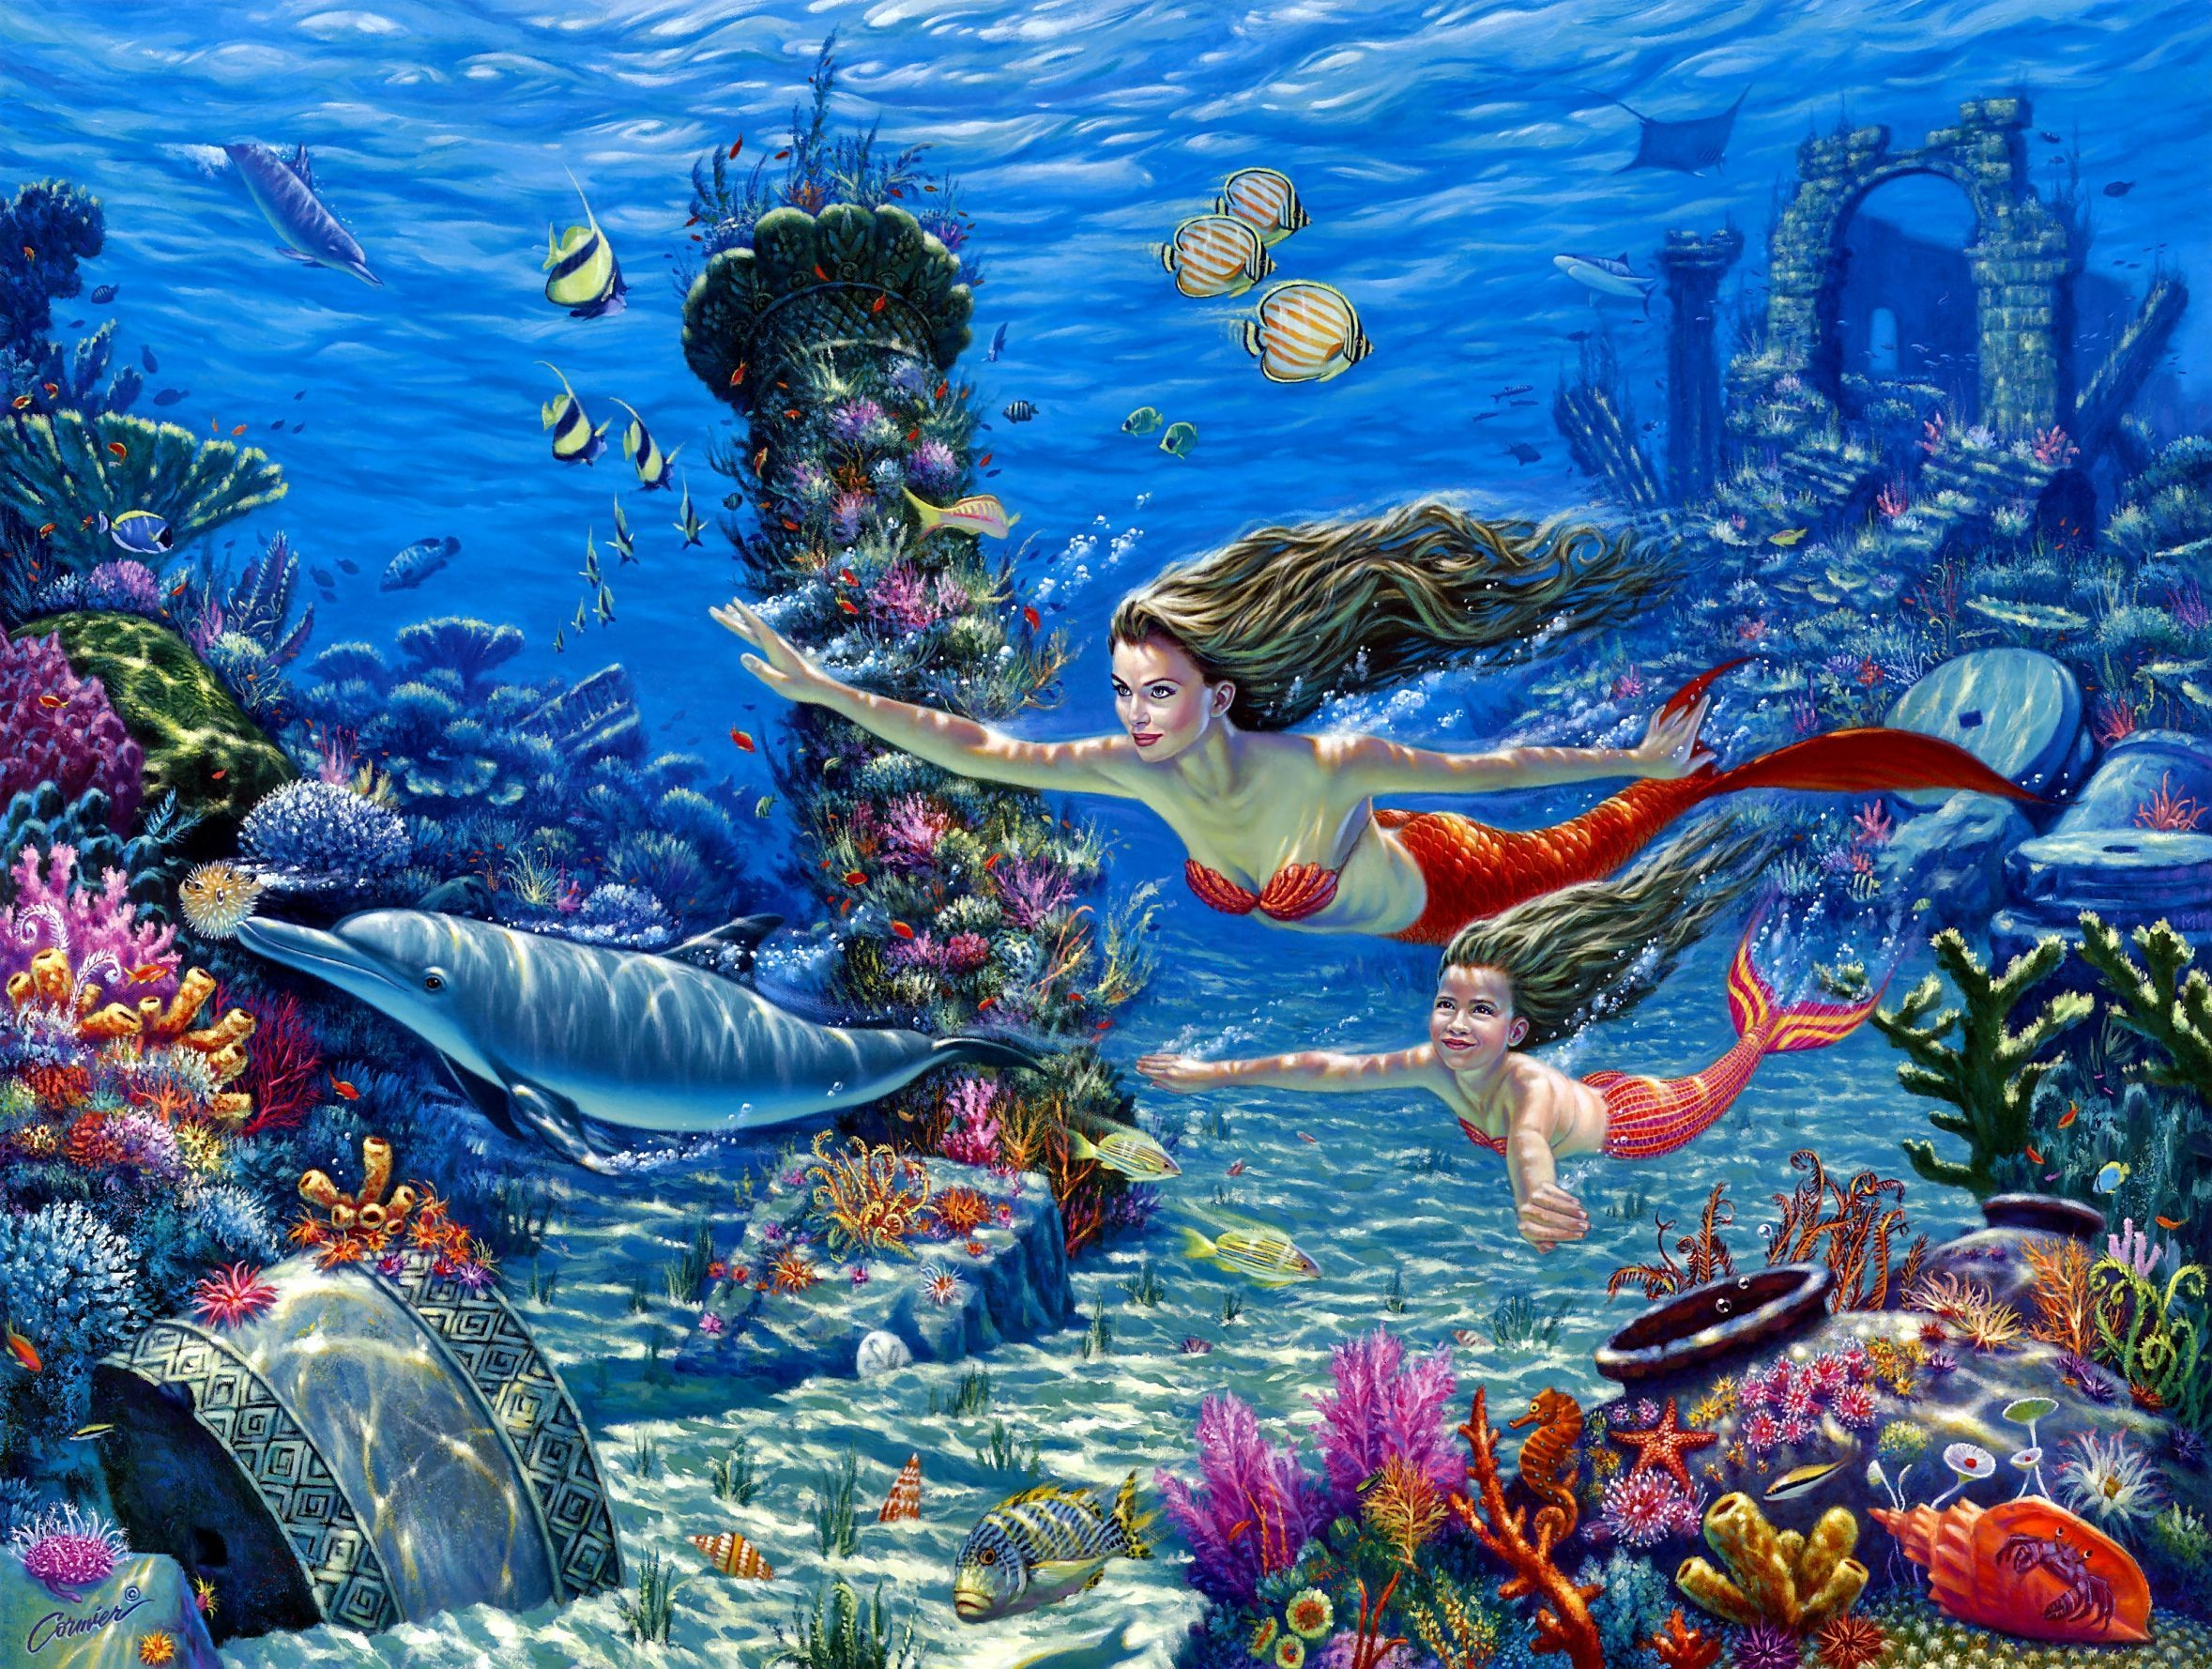 Little Mermaid Background 1 Download Free Stunning Full HD